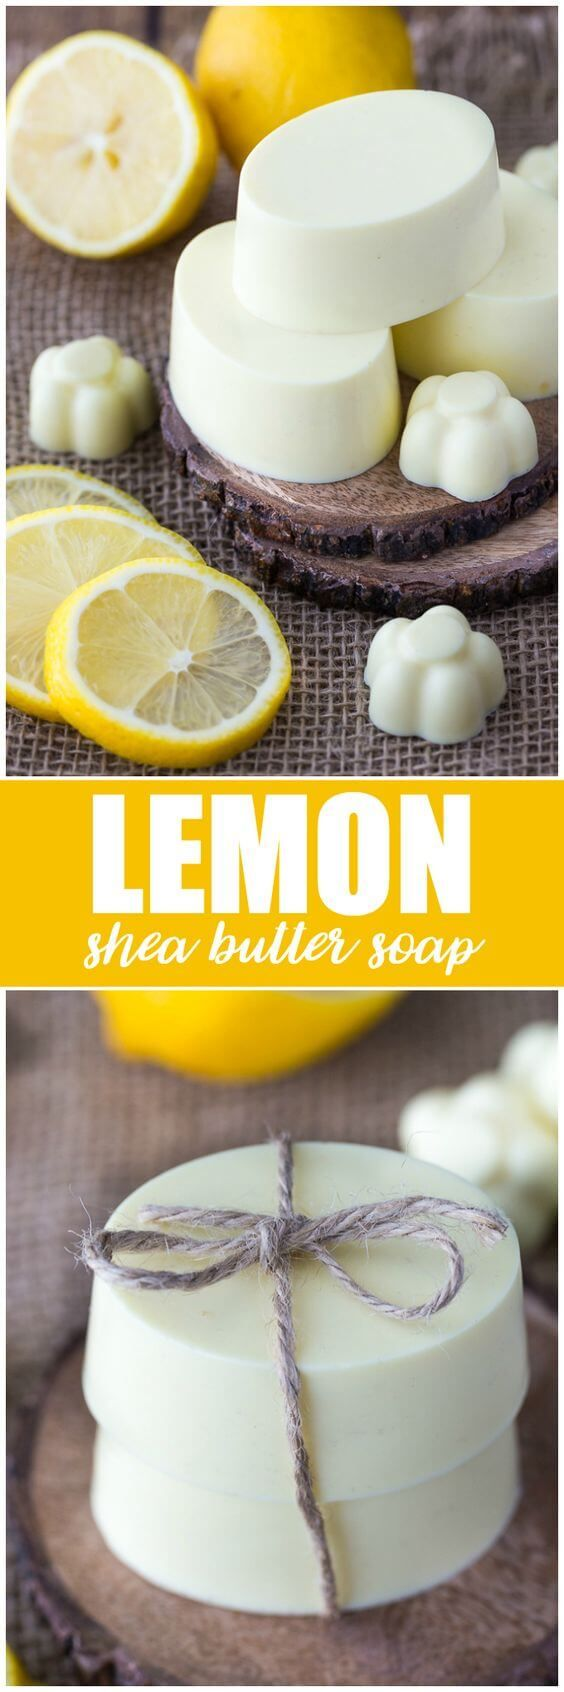 doTERRA Essential Oil Lemon Shea Butter Soap Recipe